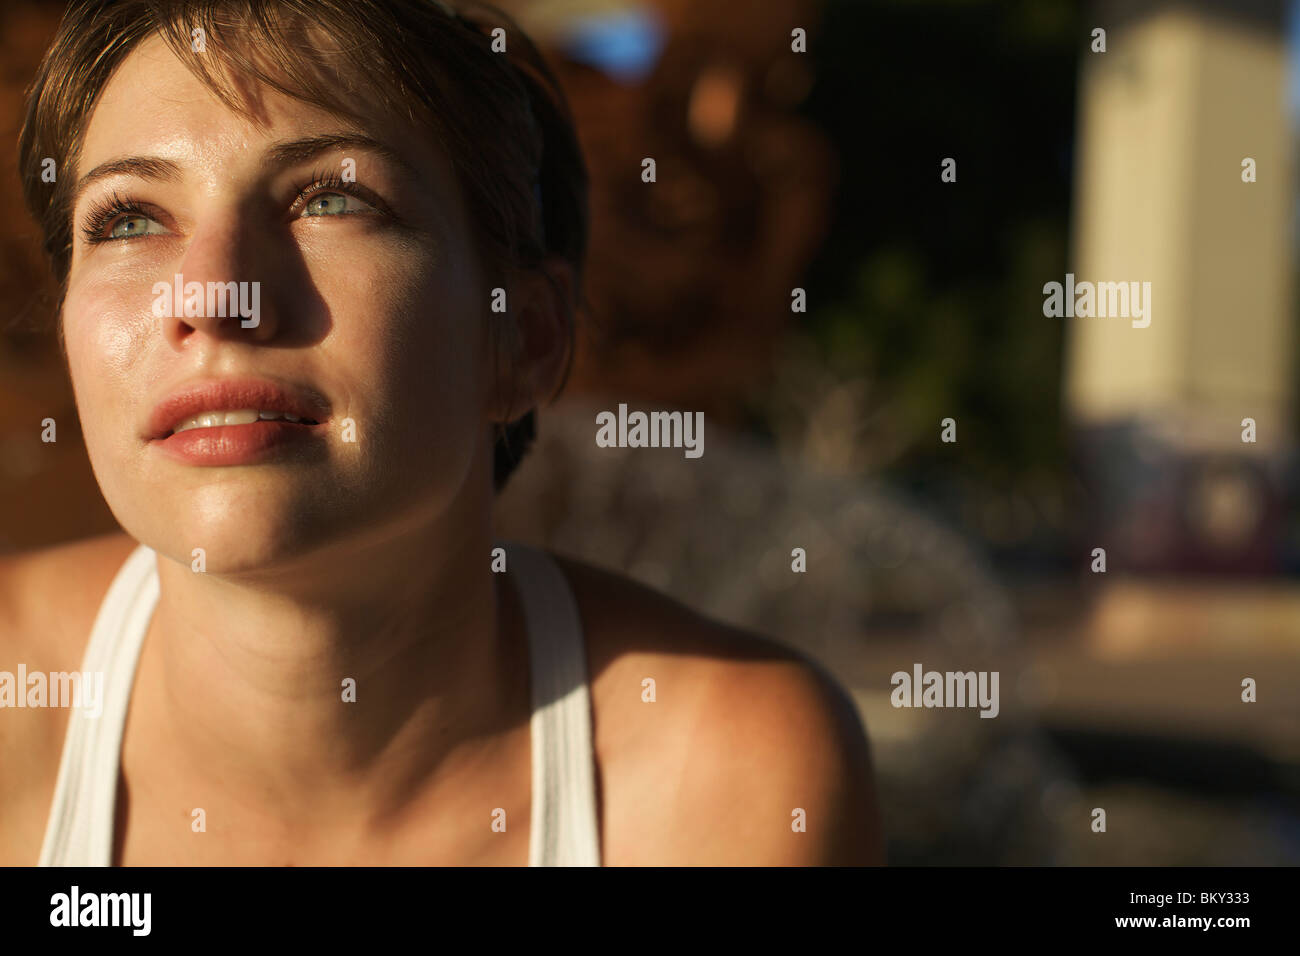 Portrait of a female runner looking away from the camera in San Diego, California. - Stock Image